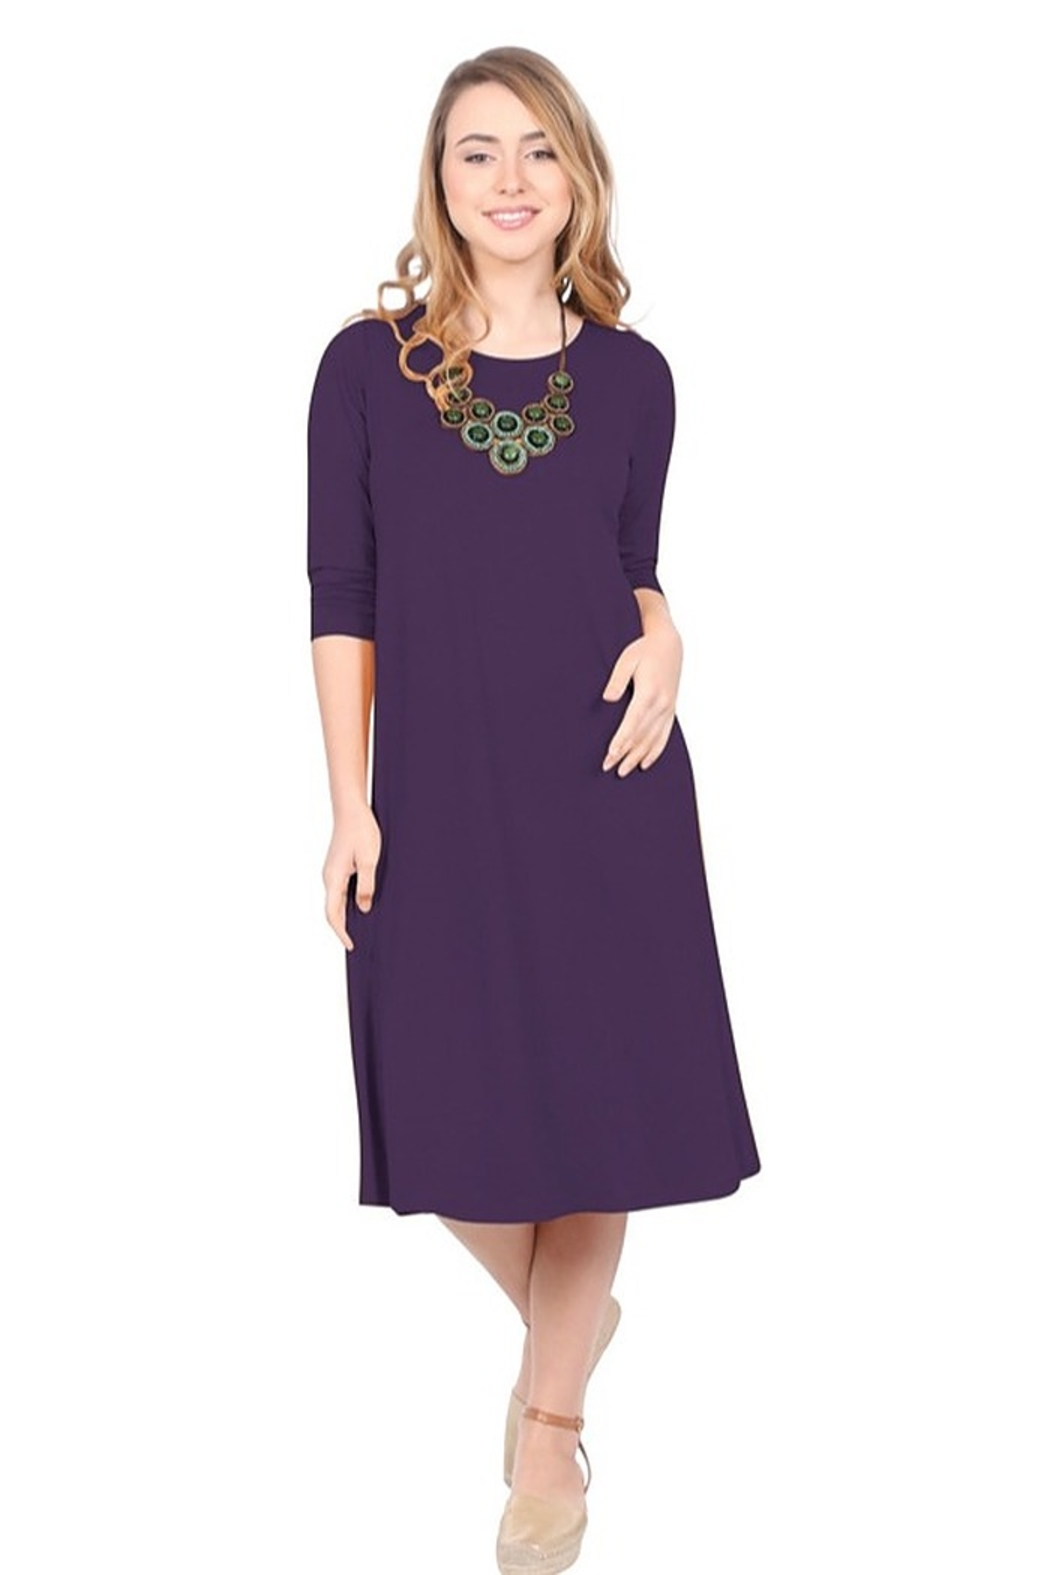 Kosher Casual A-line dress past the knee #1644 - Main Image